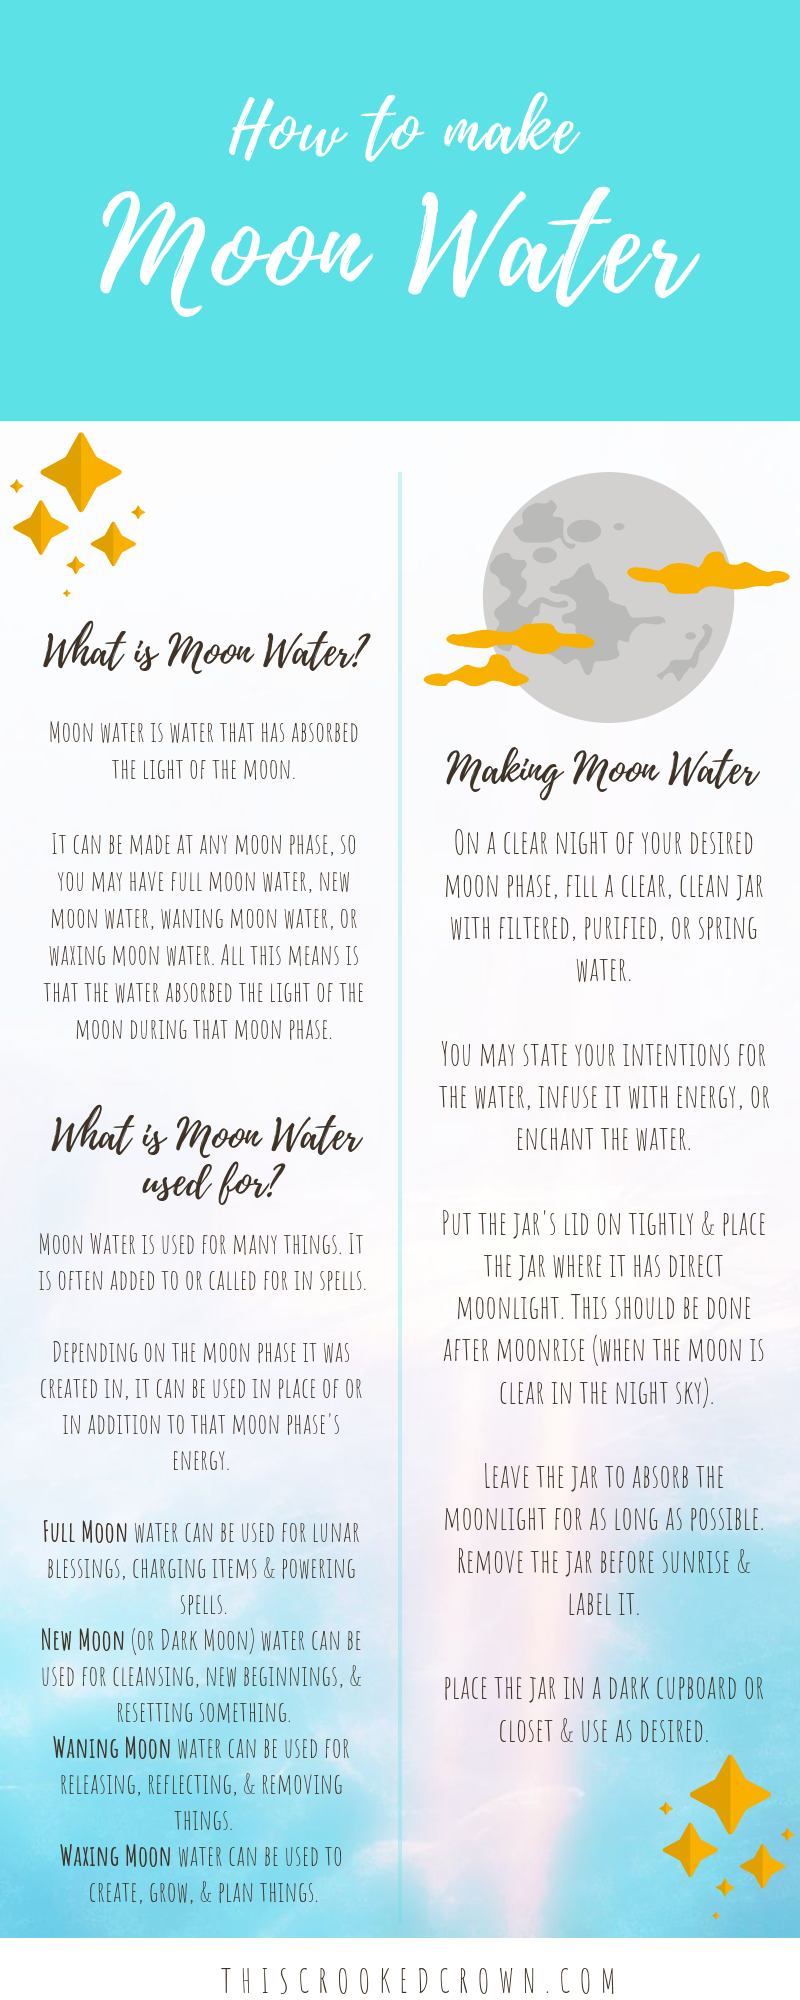 How to Make Moon Water – This Crooked Crown